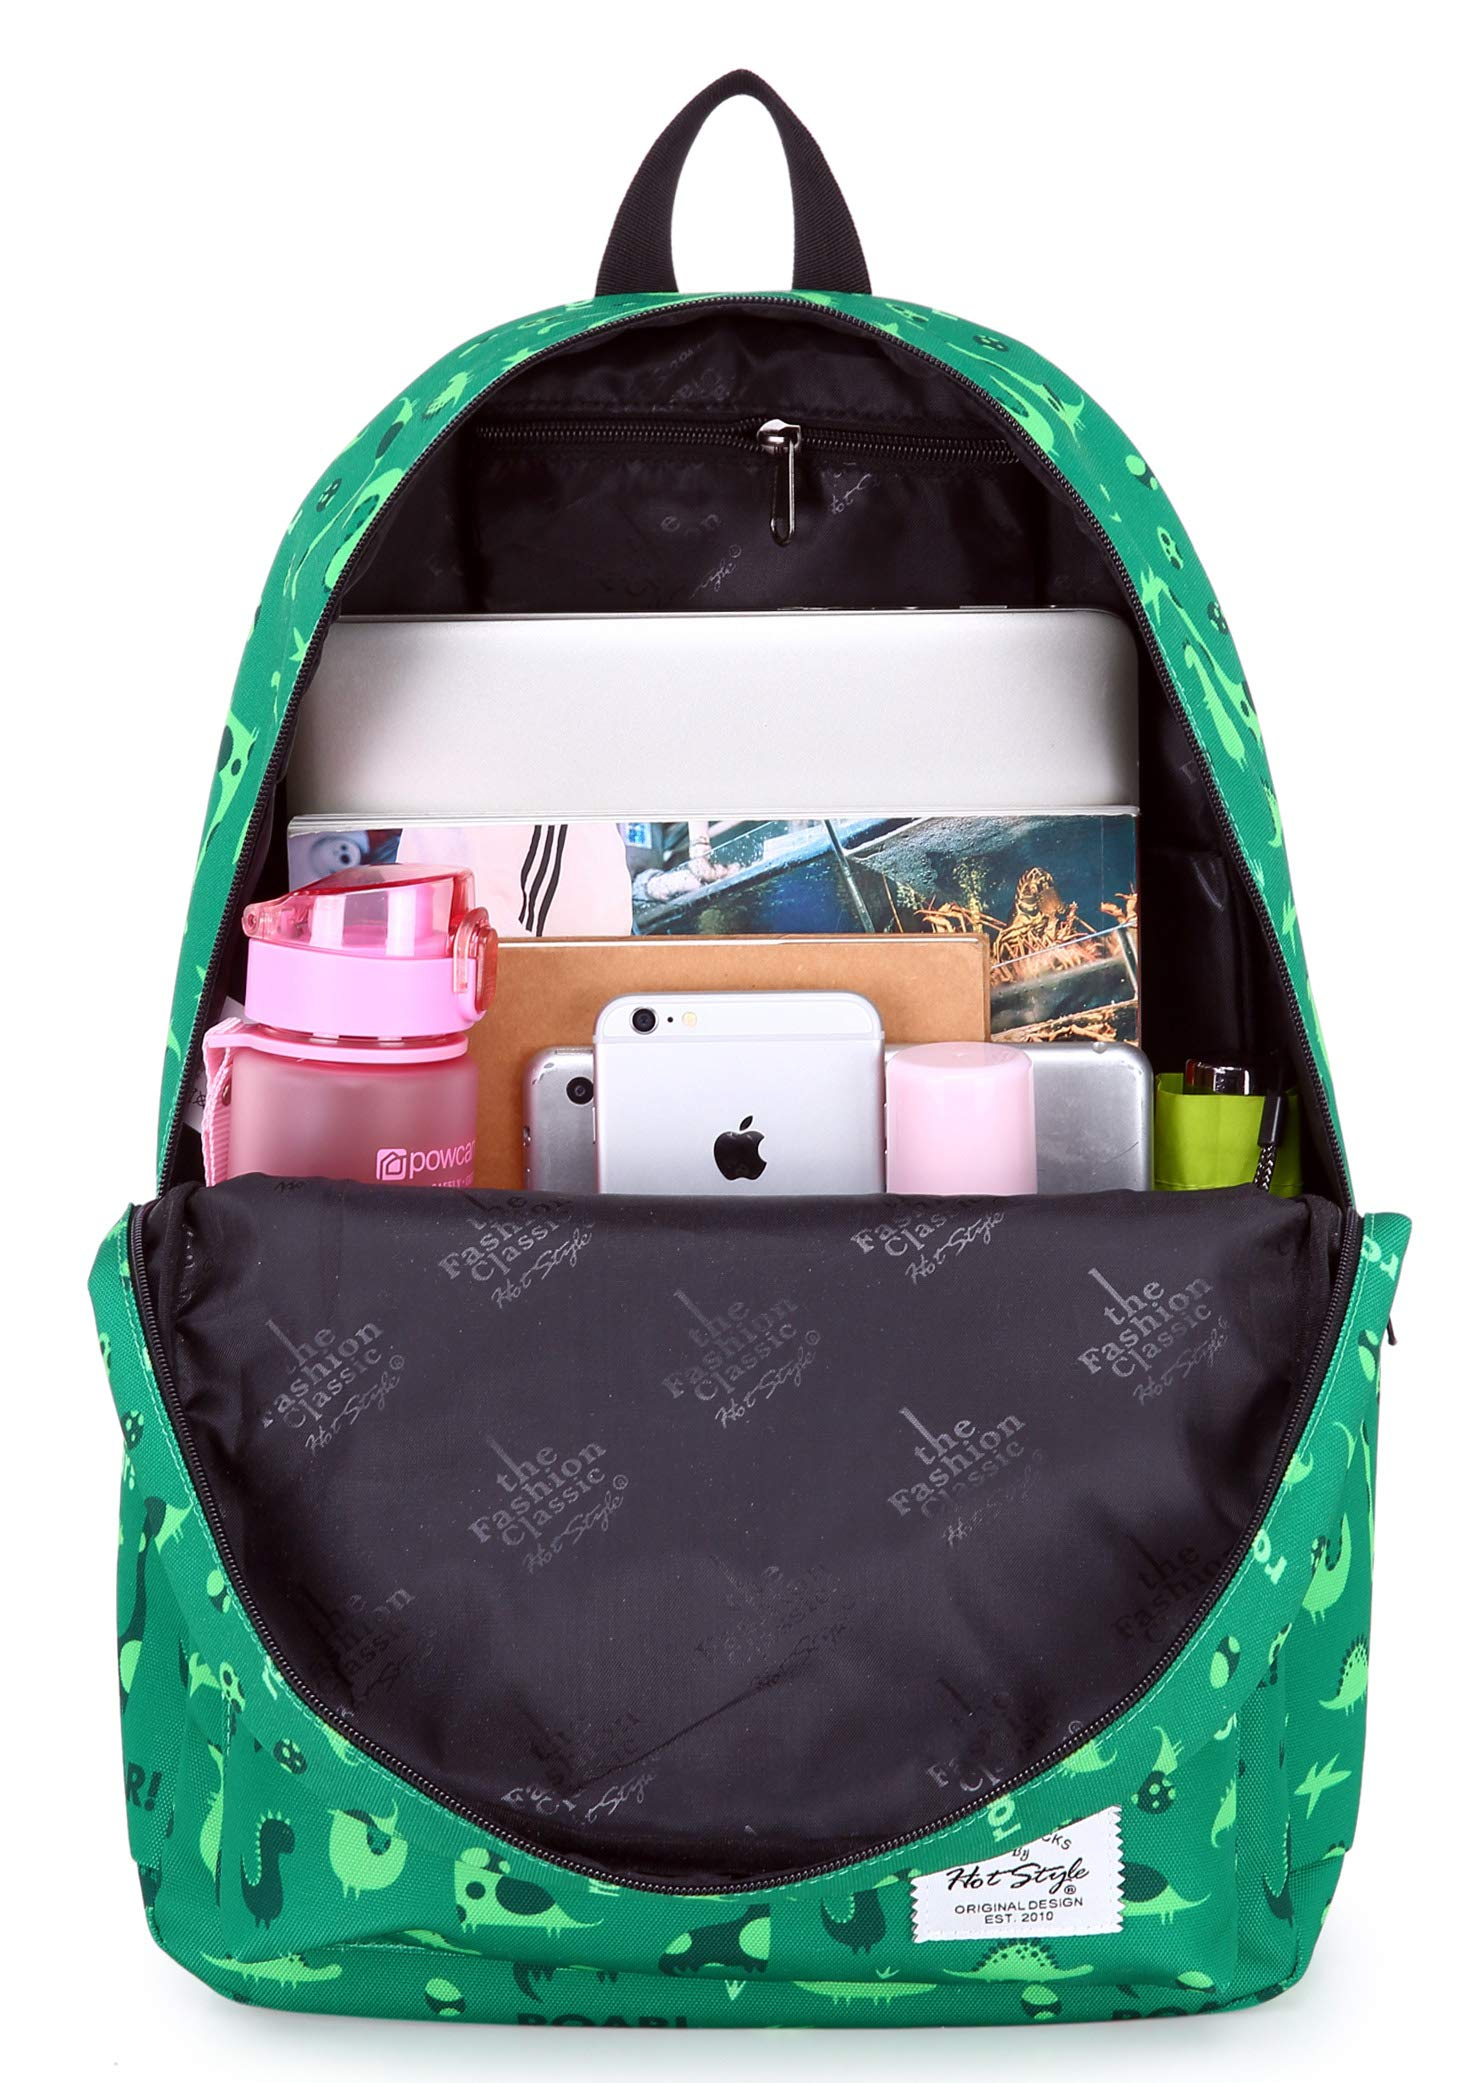 hotstyle TRENDYMAX Backpack Cute for School | 16''x12''x6'' | Holds 15.4-inch Laptop | Dinosaurs, Green by hotstyle (Image #6)